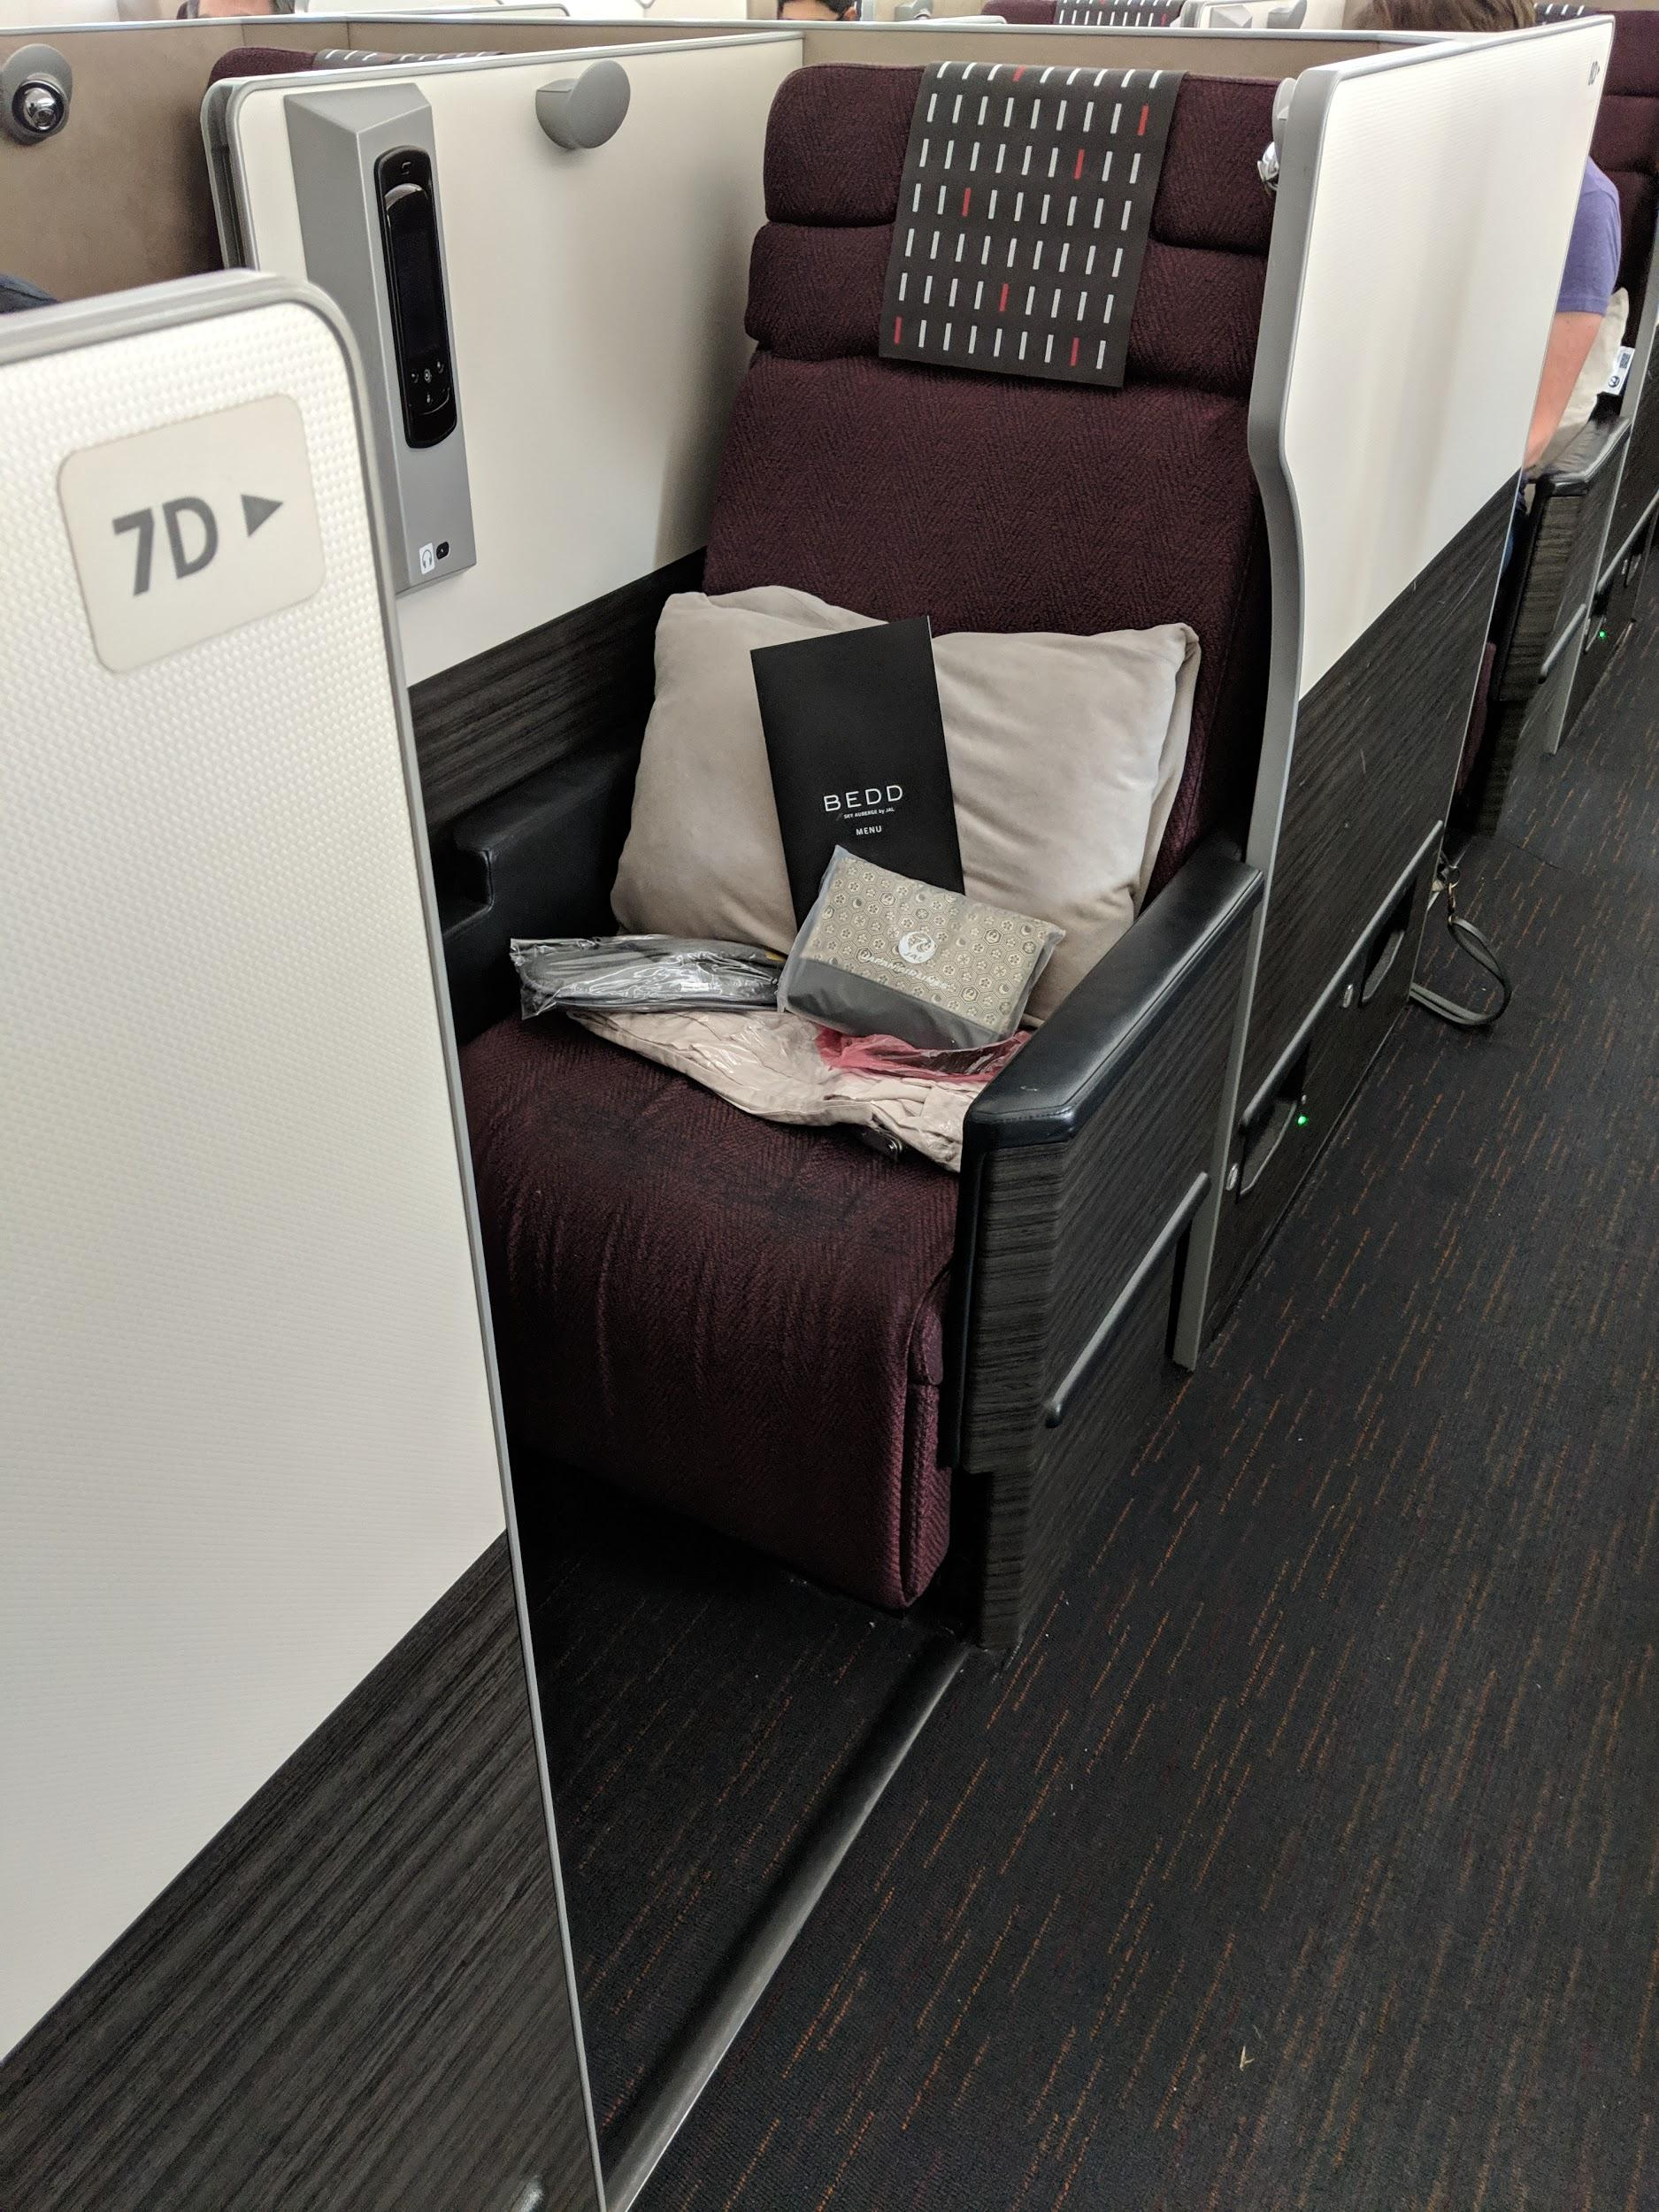 Japan Airlines Business Class | Point Hacks